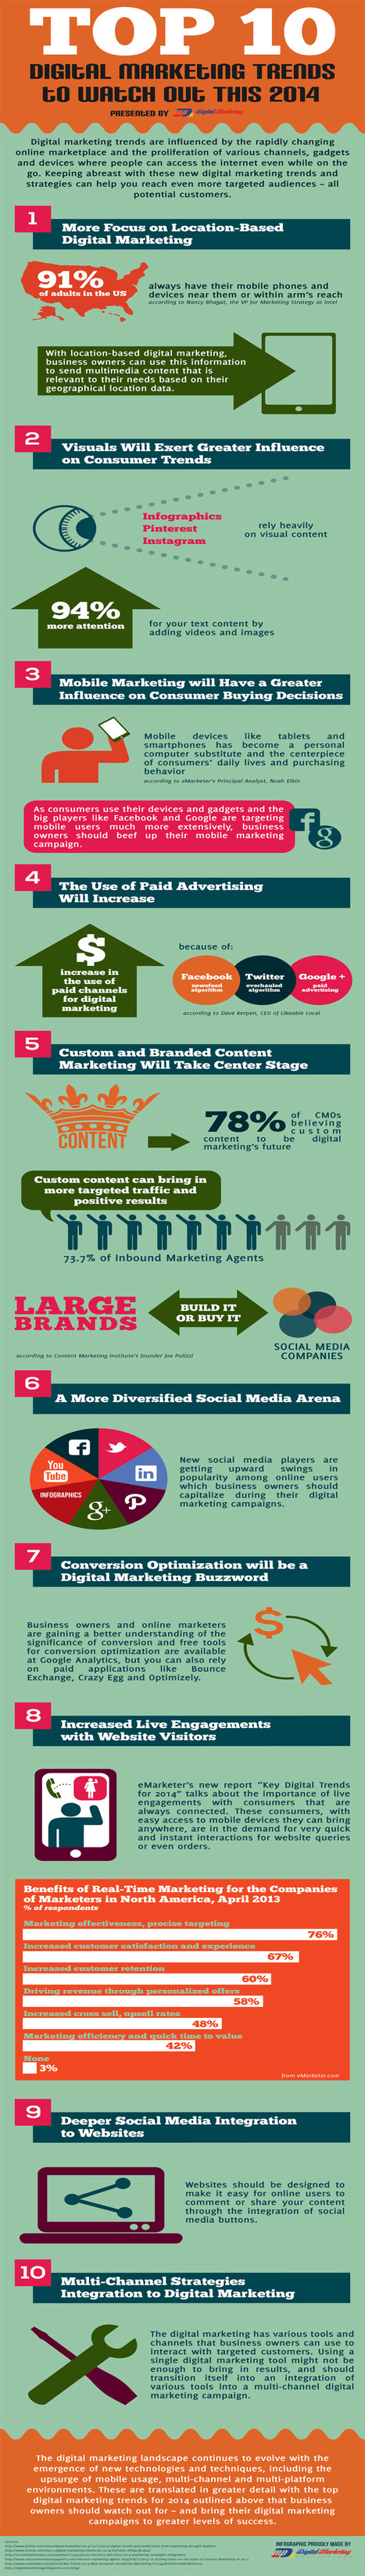 Top 10 Digital Marketing Trends To Watch Out This 2014 (Infographic) - Business 2 Community | Unit 12 | Scoop.it